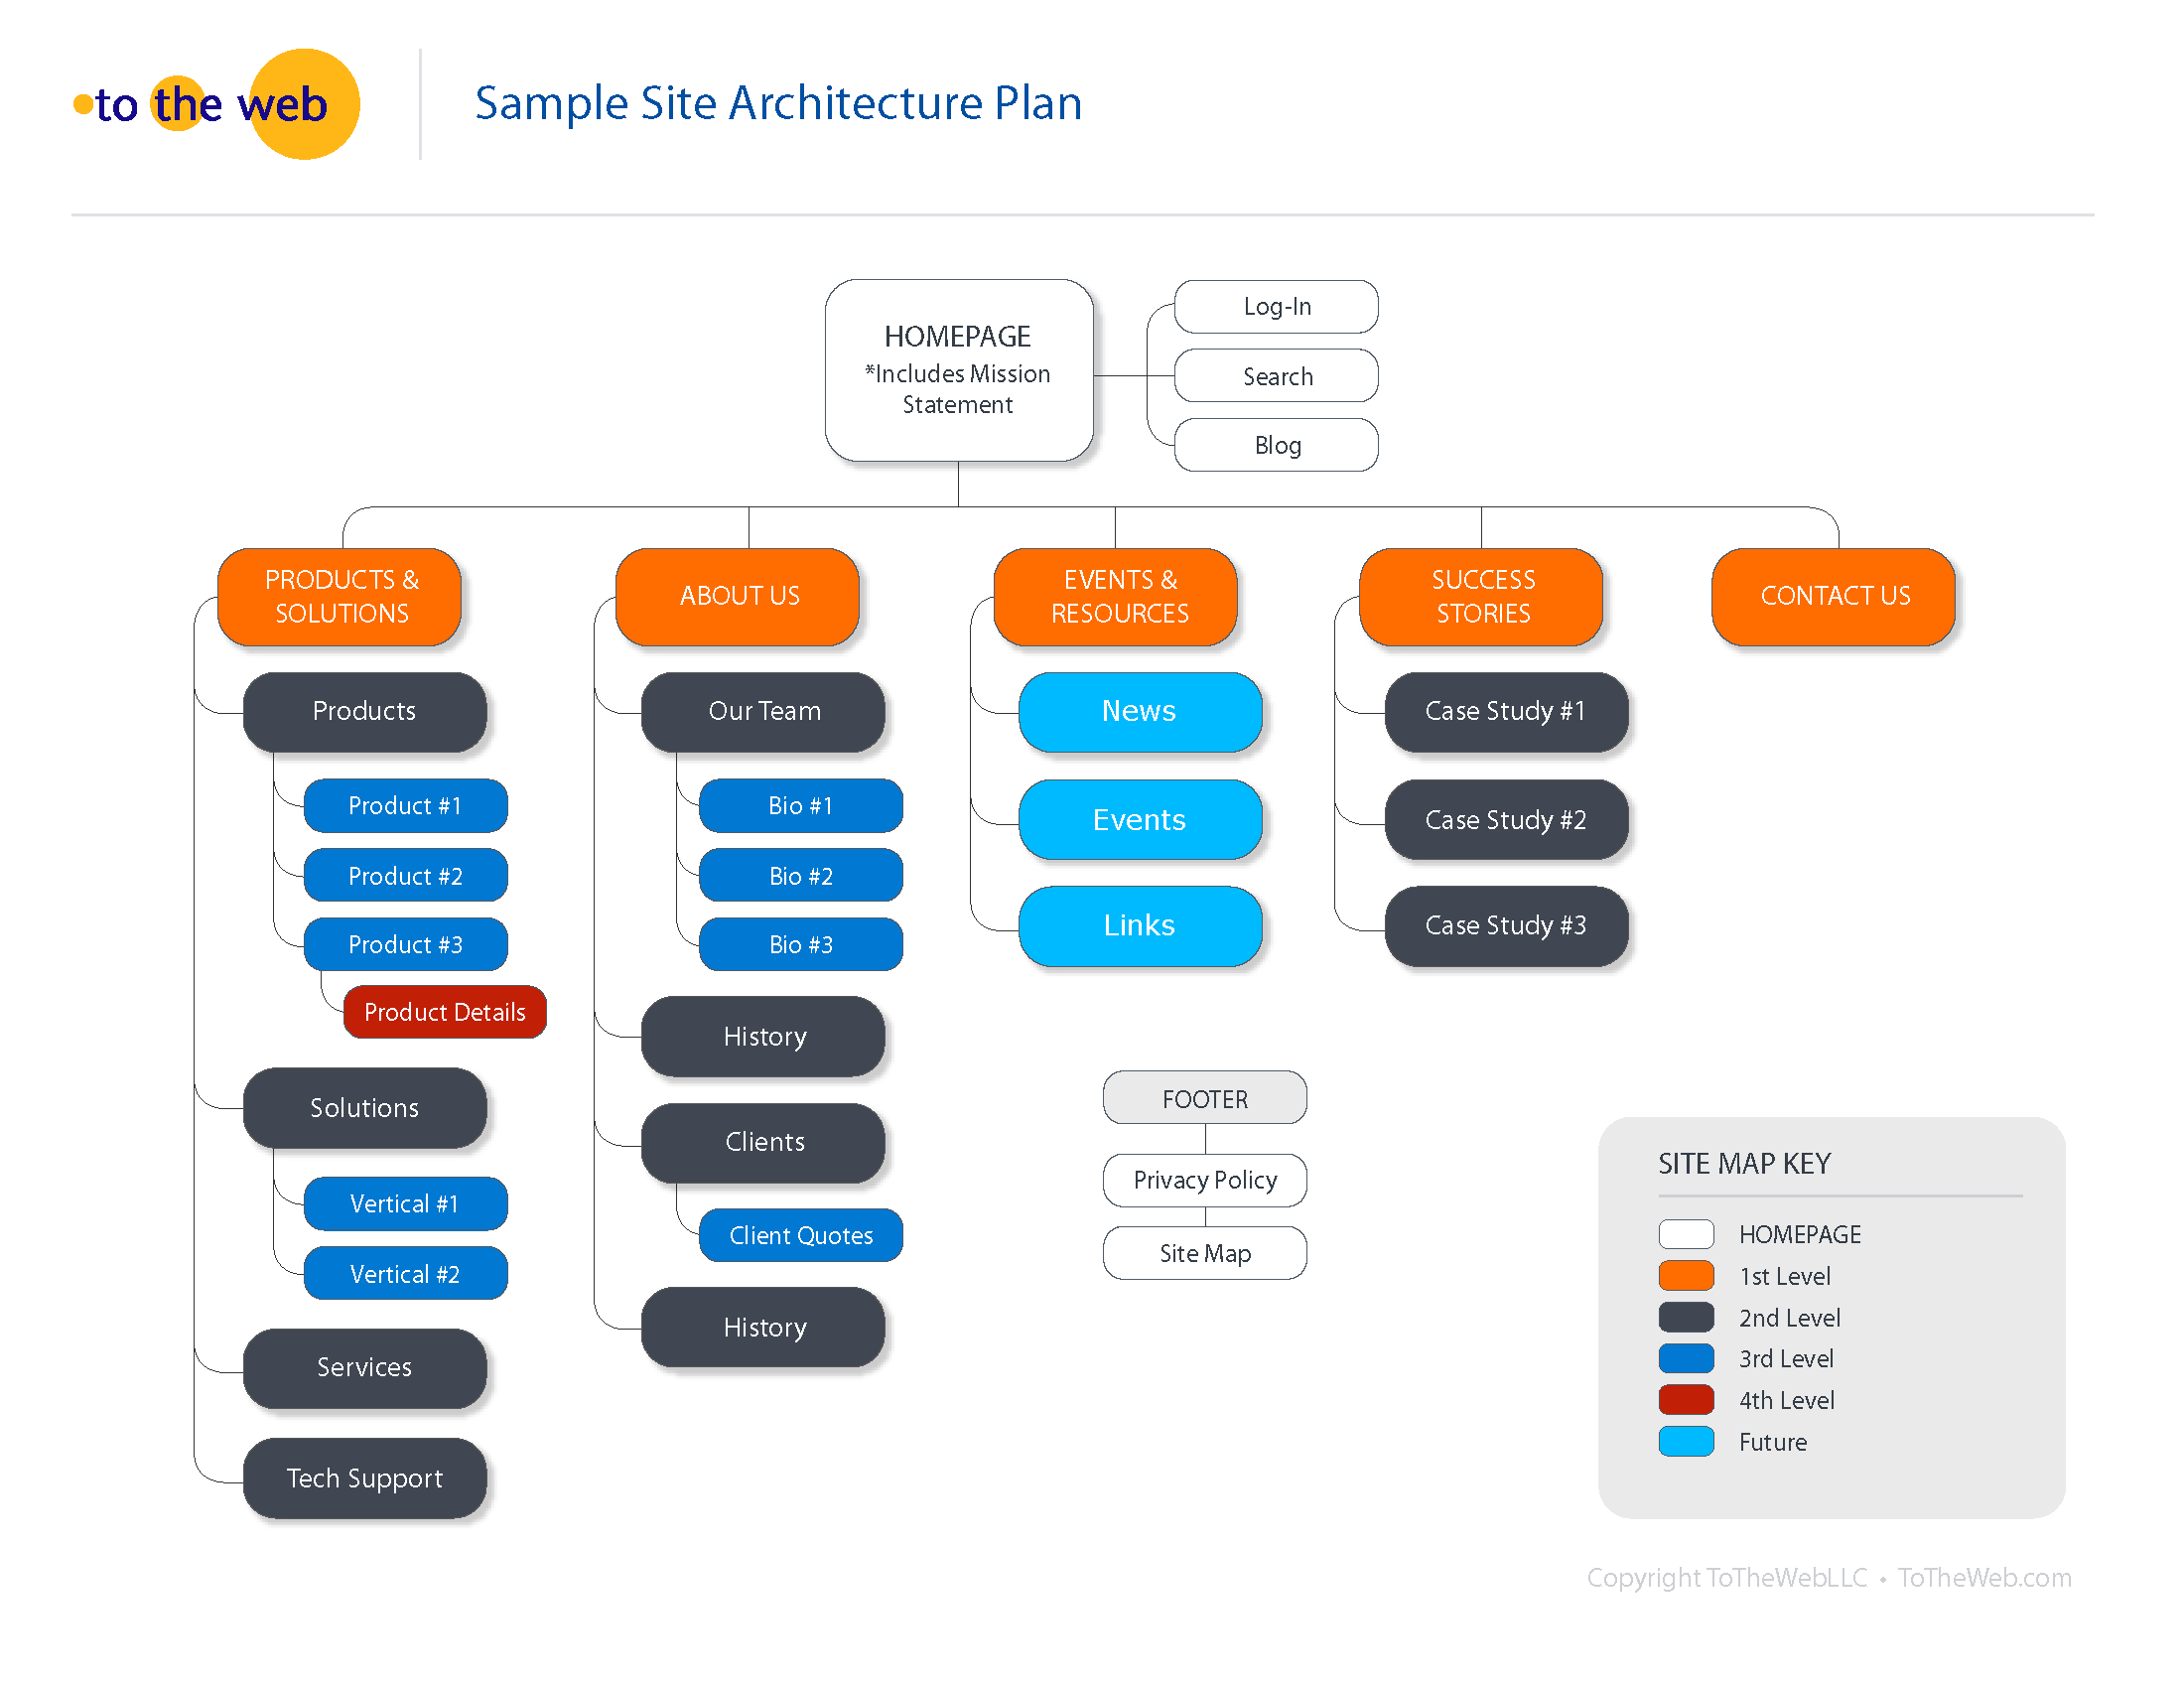 Defining your Site Architecture Is The 1st Step in a